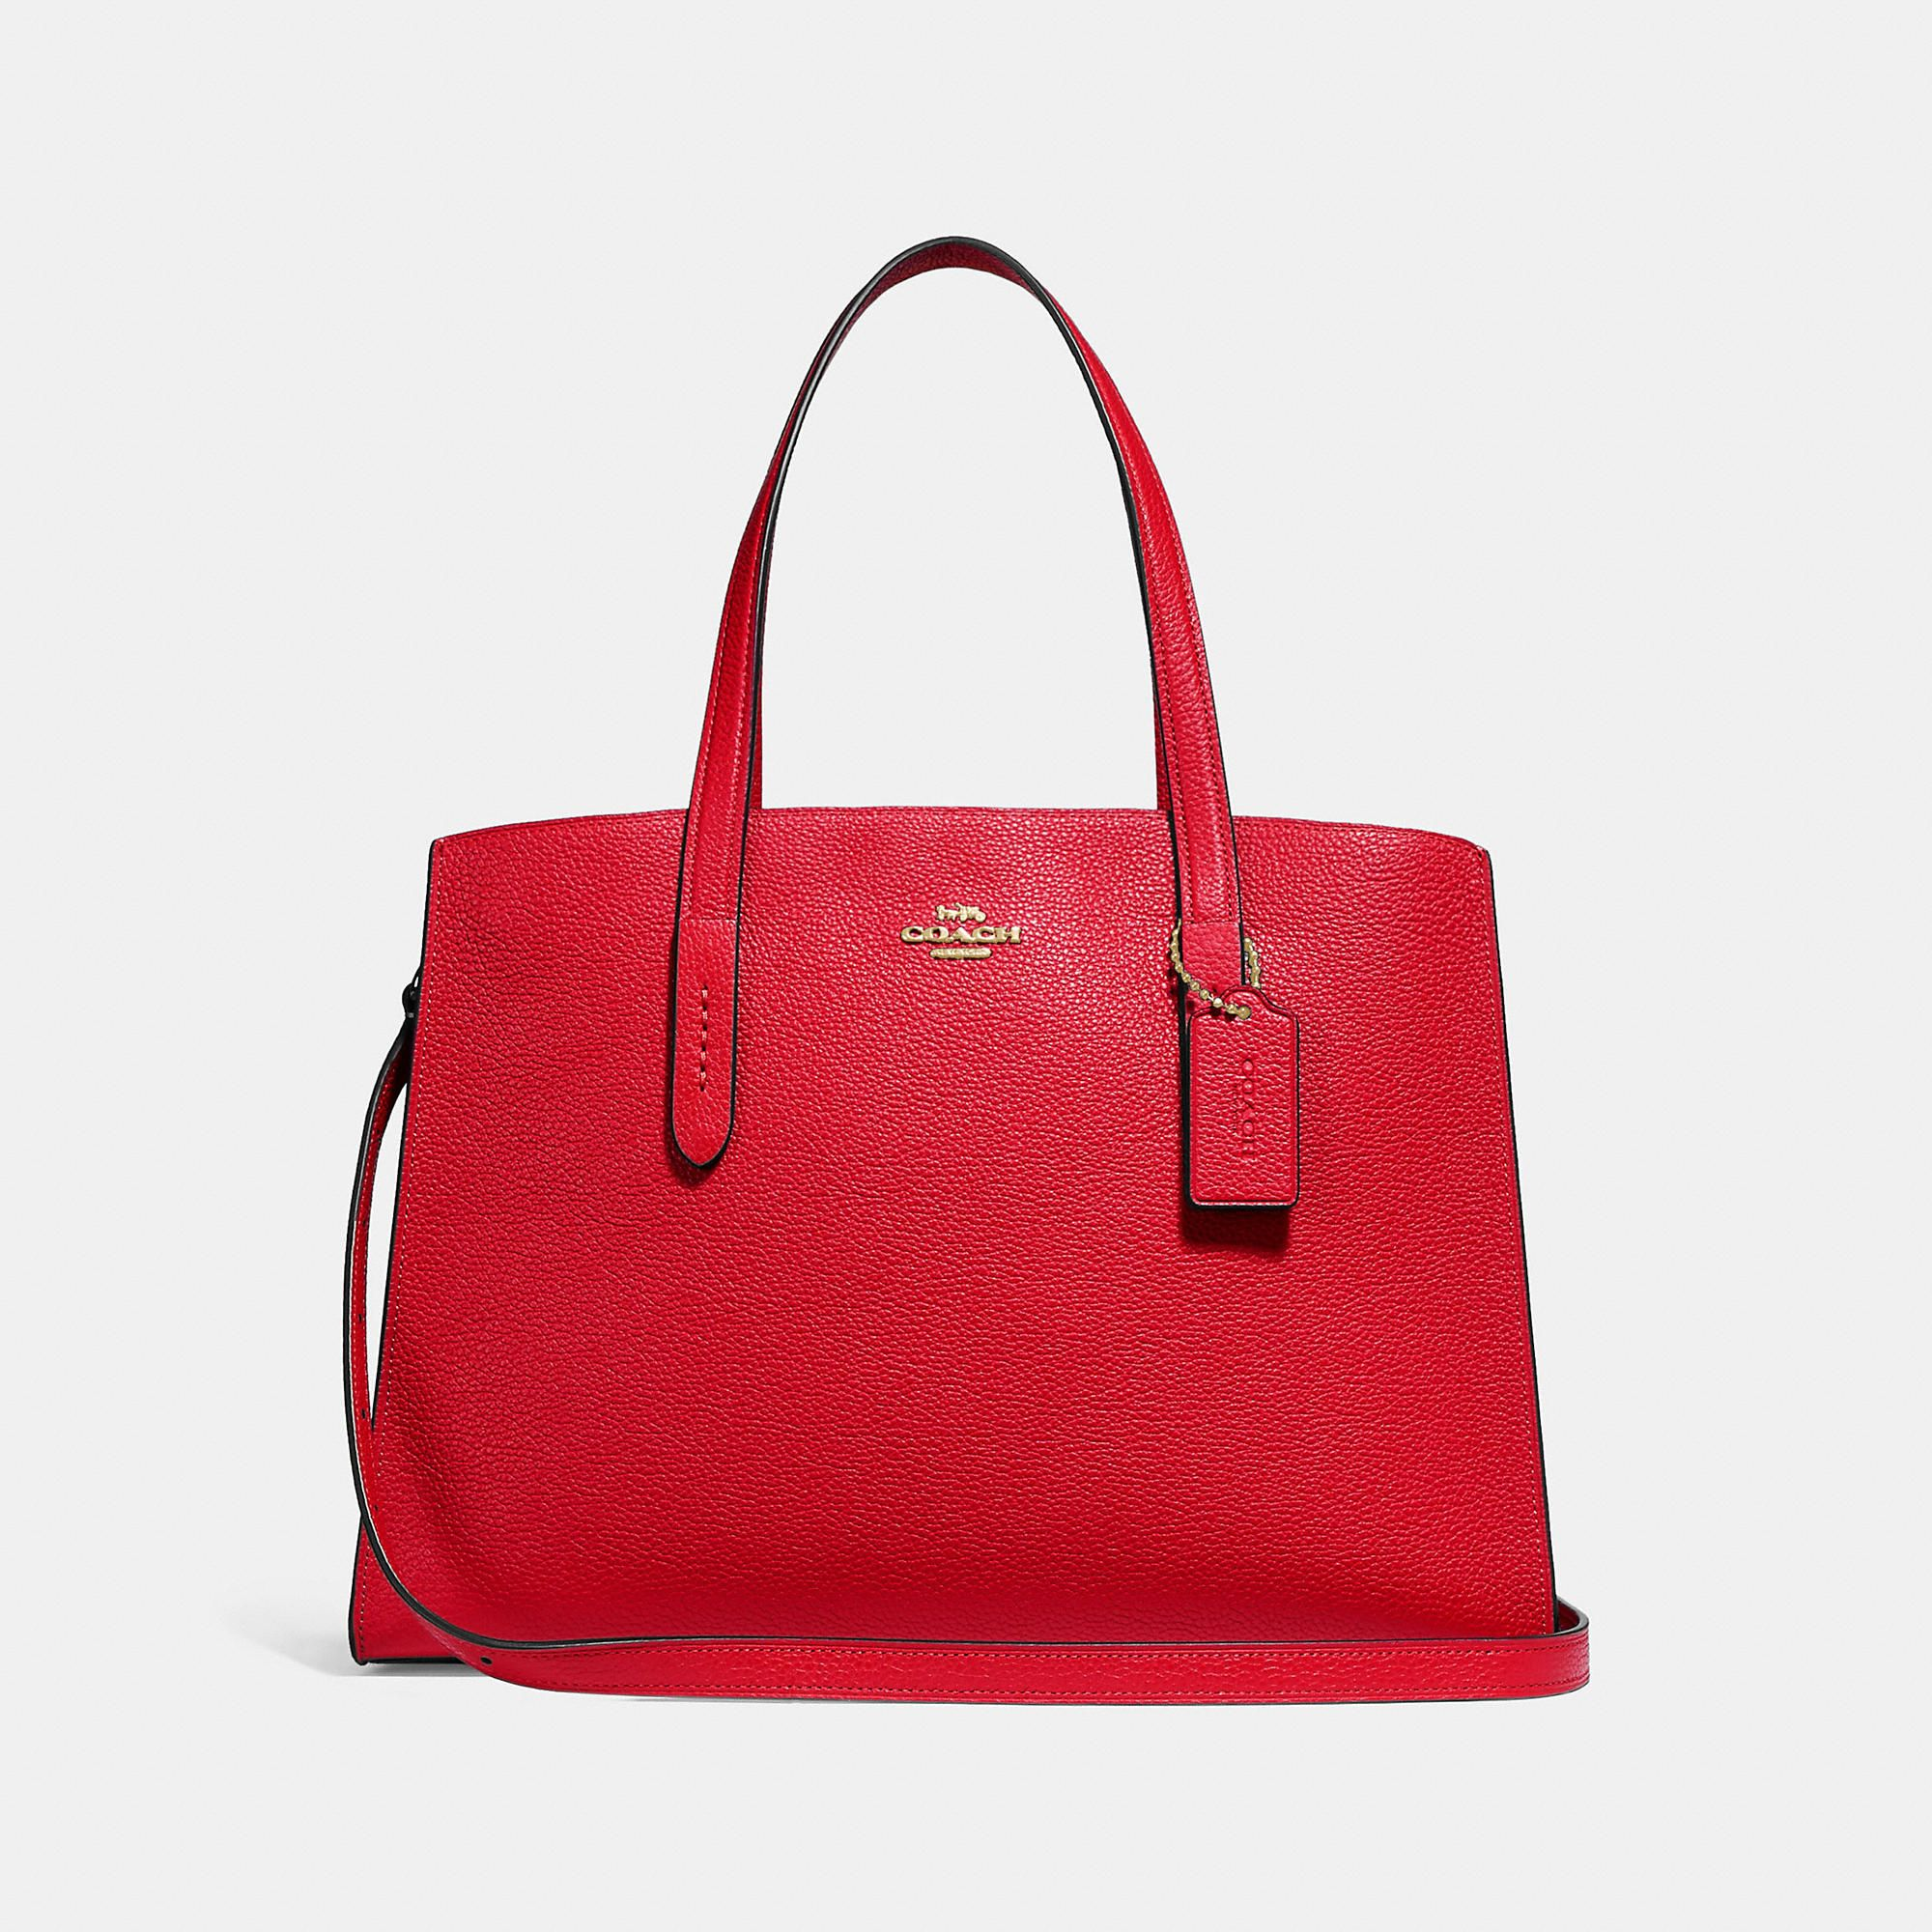 8b9d48b8ad Lunar new year charlie carryall in 2019 | Products | Leather ...